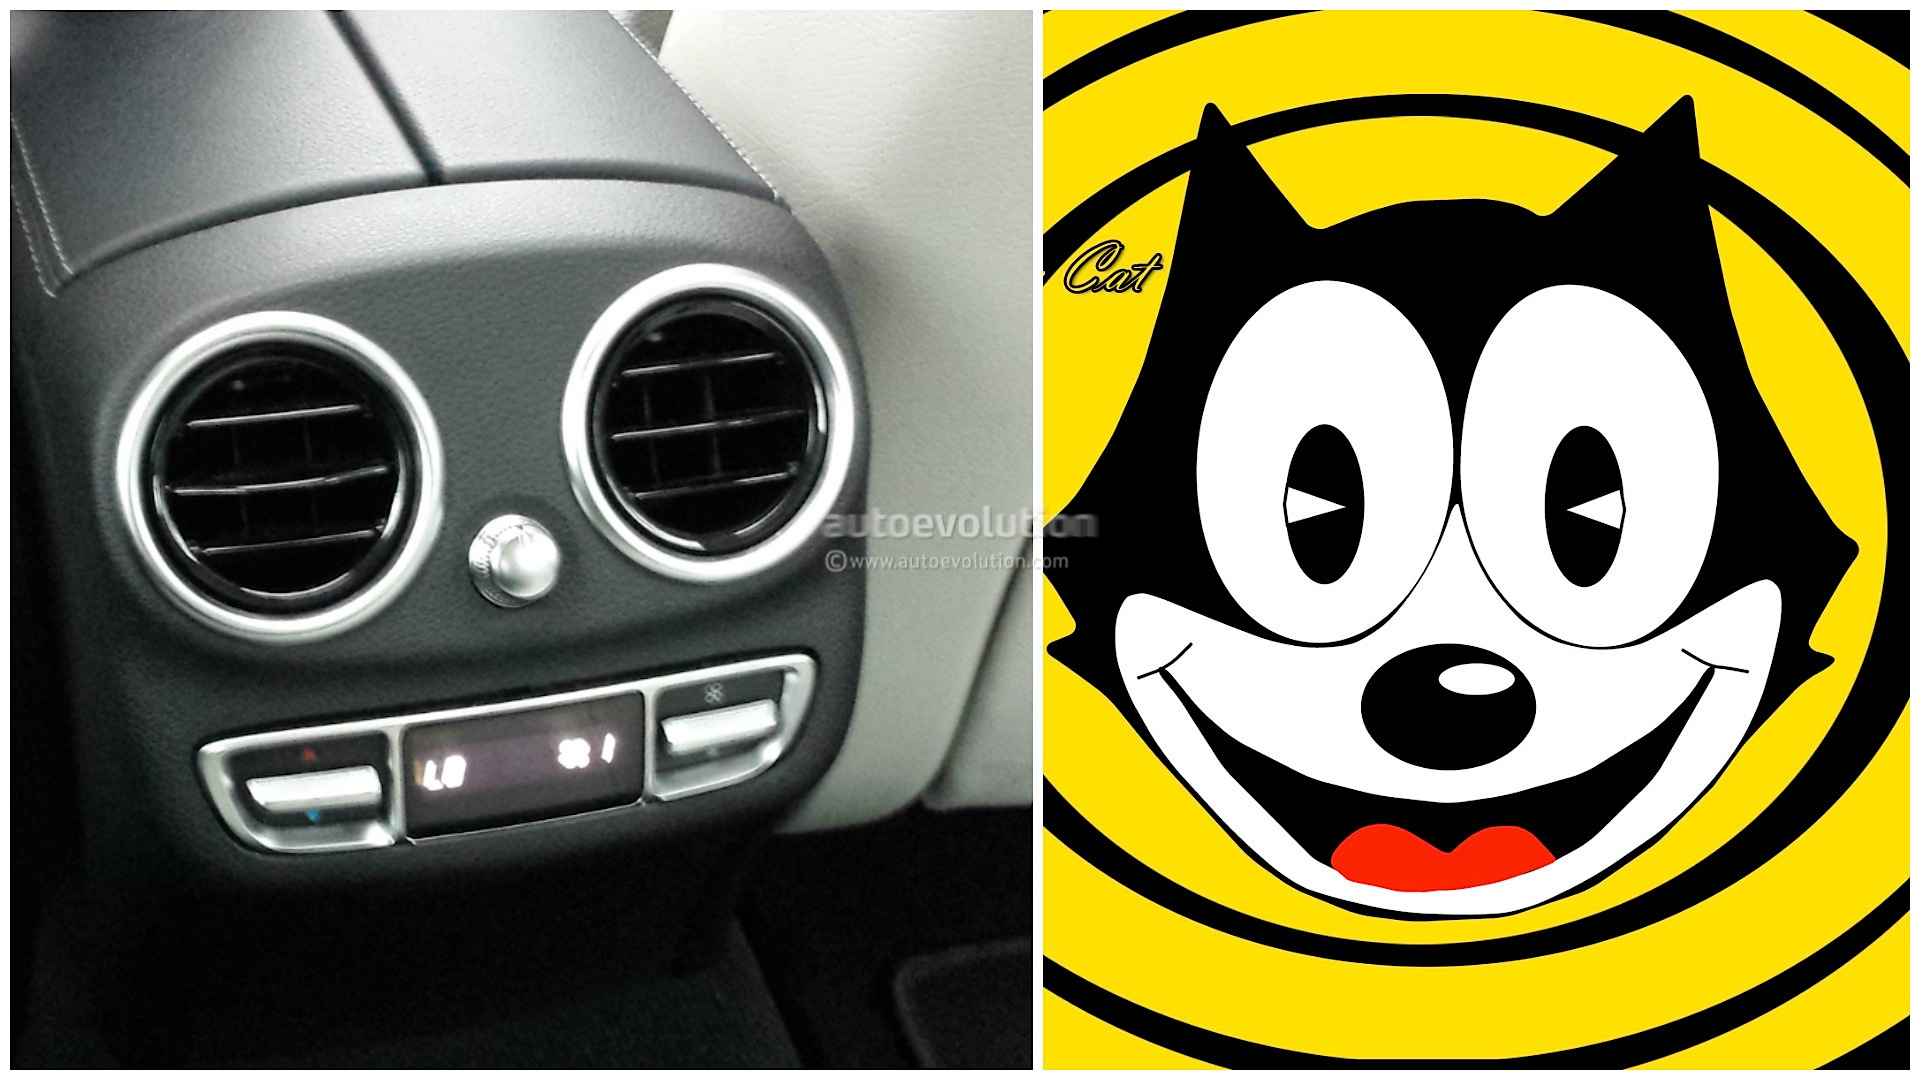 What Cartoon Characters Have In Mon With Car Interior